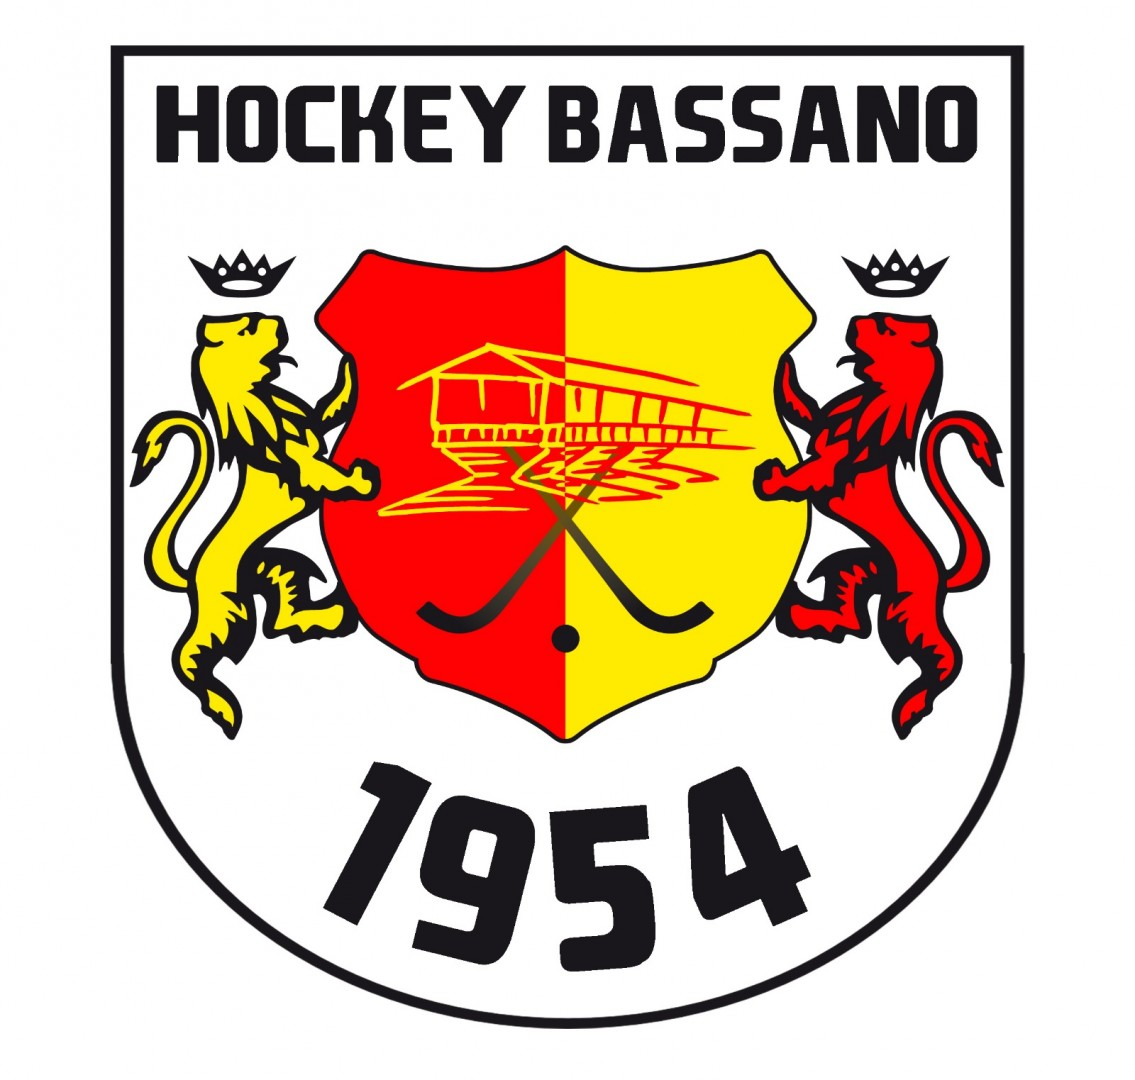 Hockey Bassano